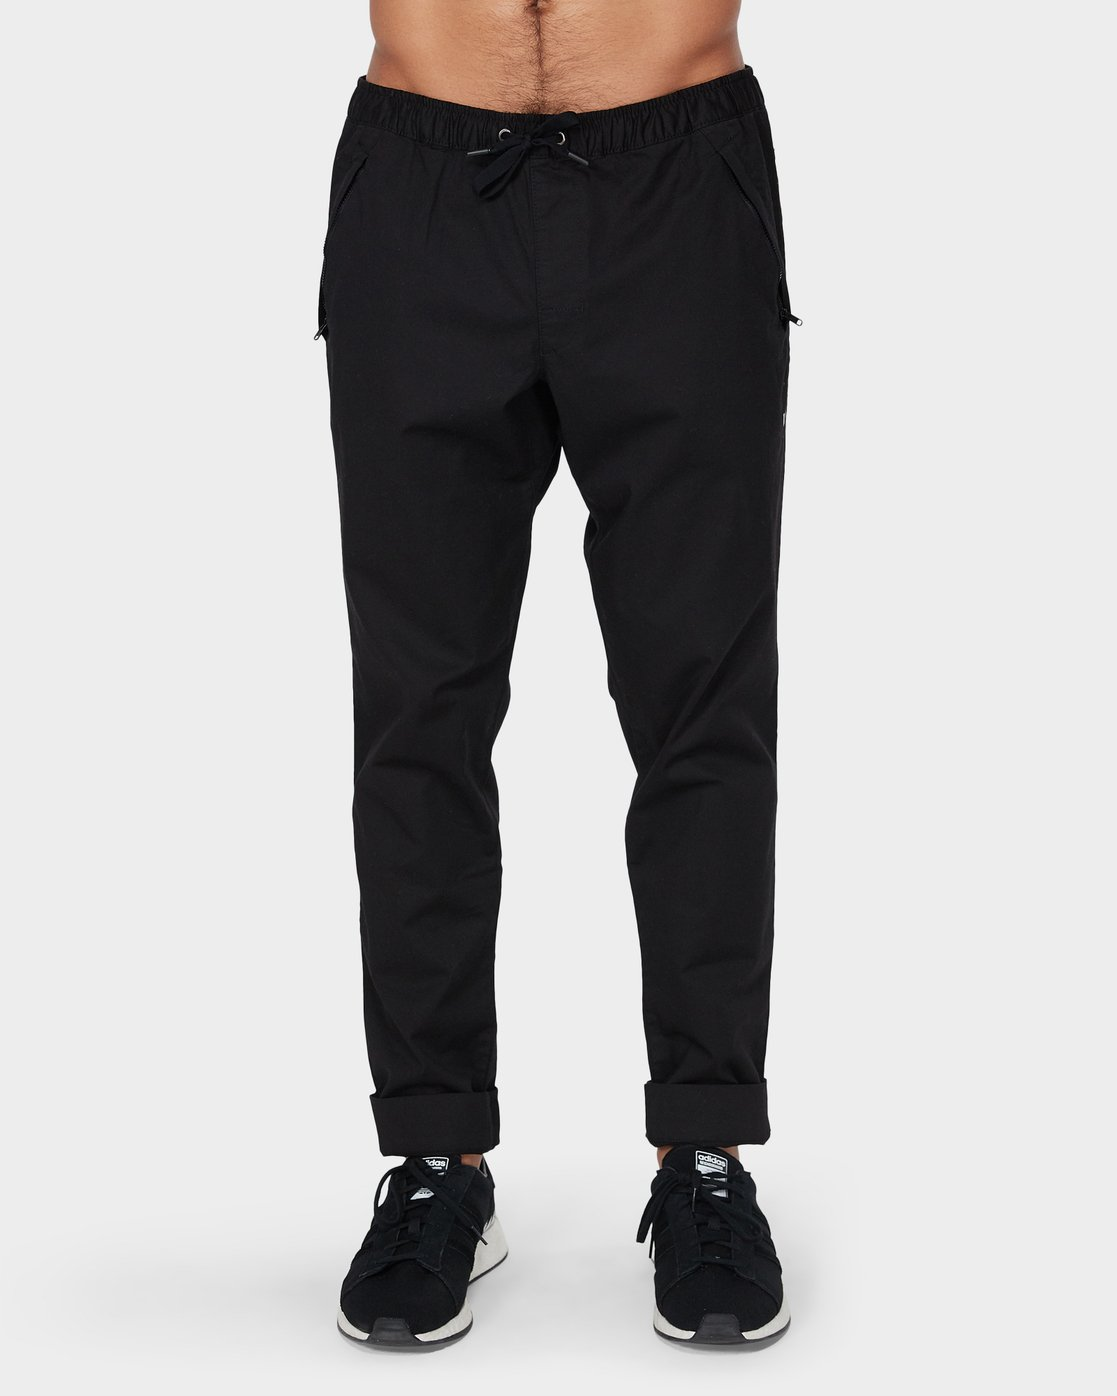 1 Vamok Pants Black R381276 RVCA